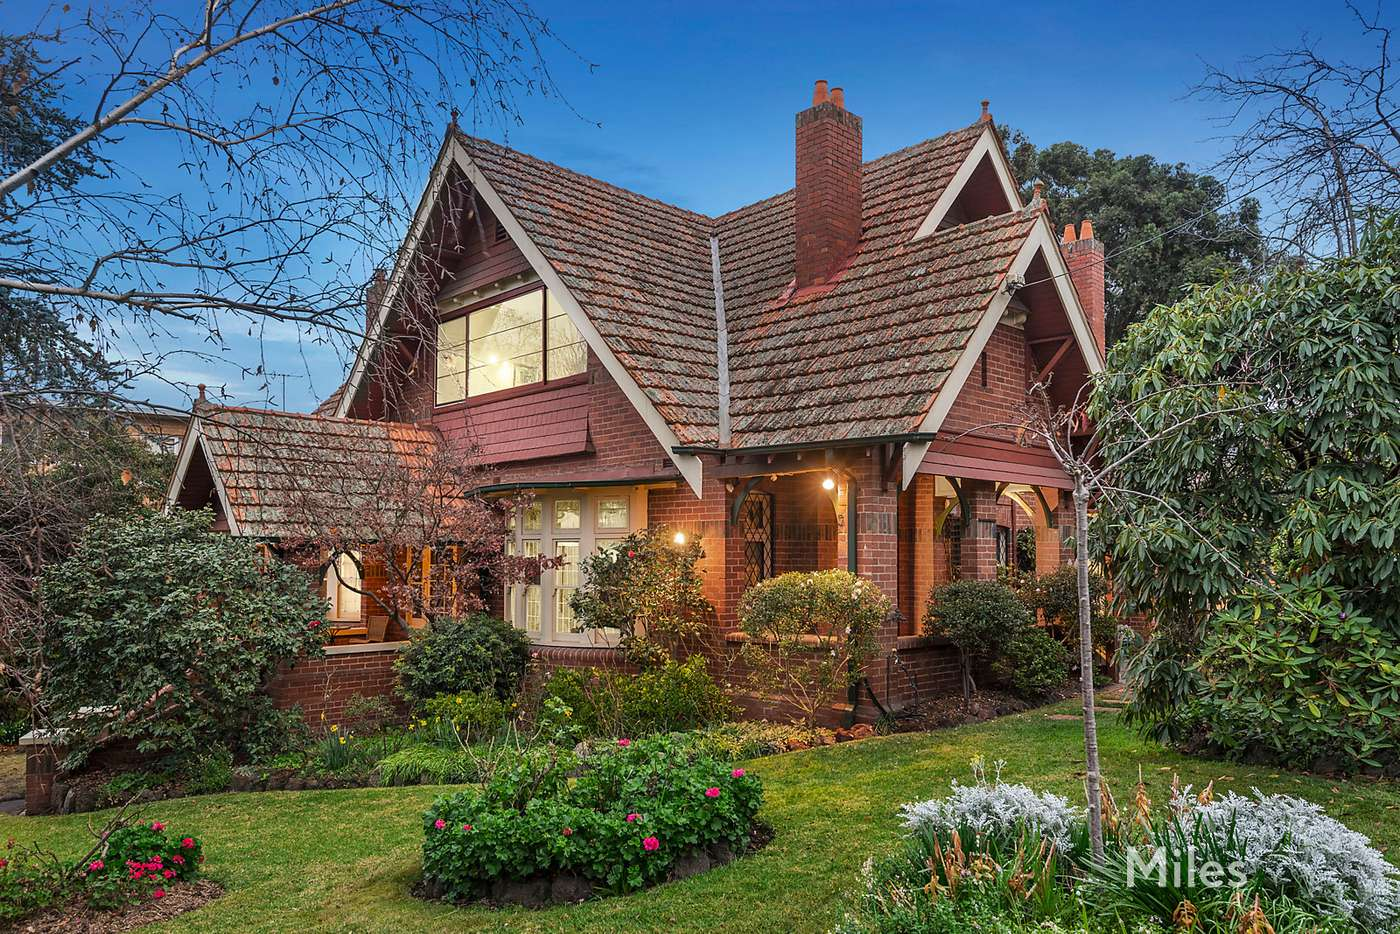 Main view of Homely house listing, 151 Marshall Street, Ivanhoe VIC 3079